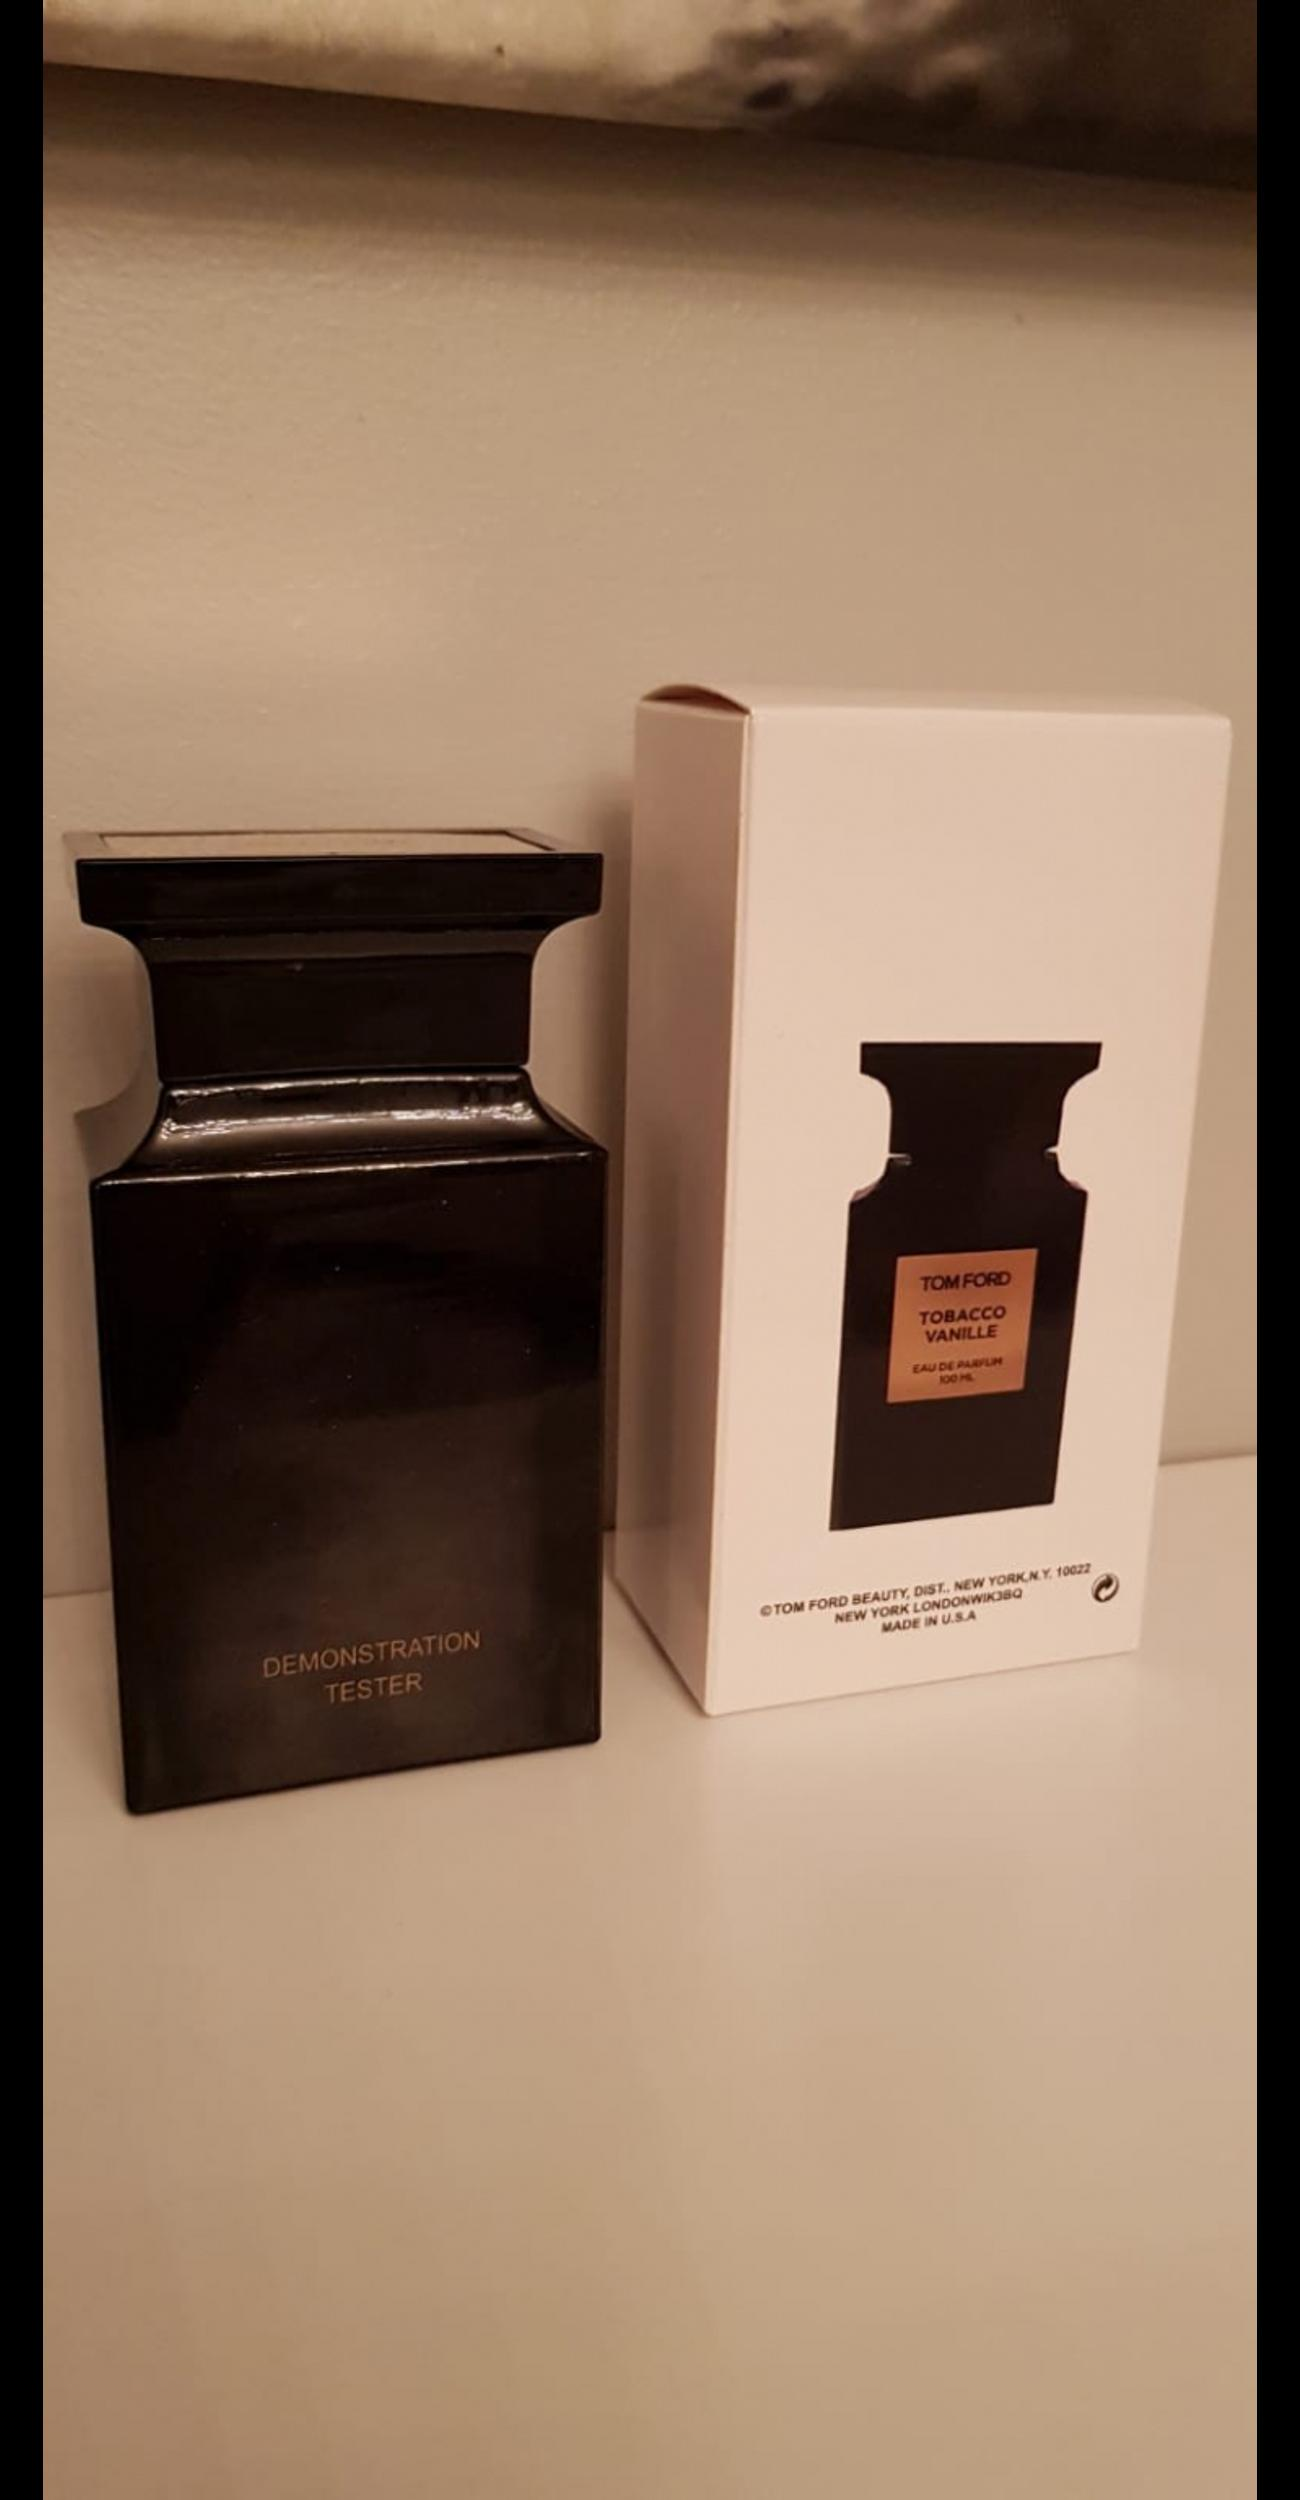 Tom Ford Tobacco Vanille Perfume 100ml In Hp1 Dacorum For 7500 For